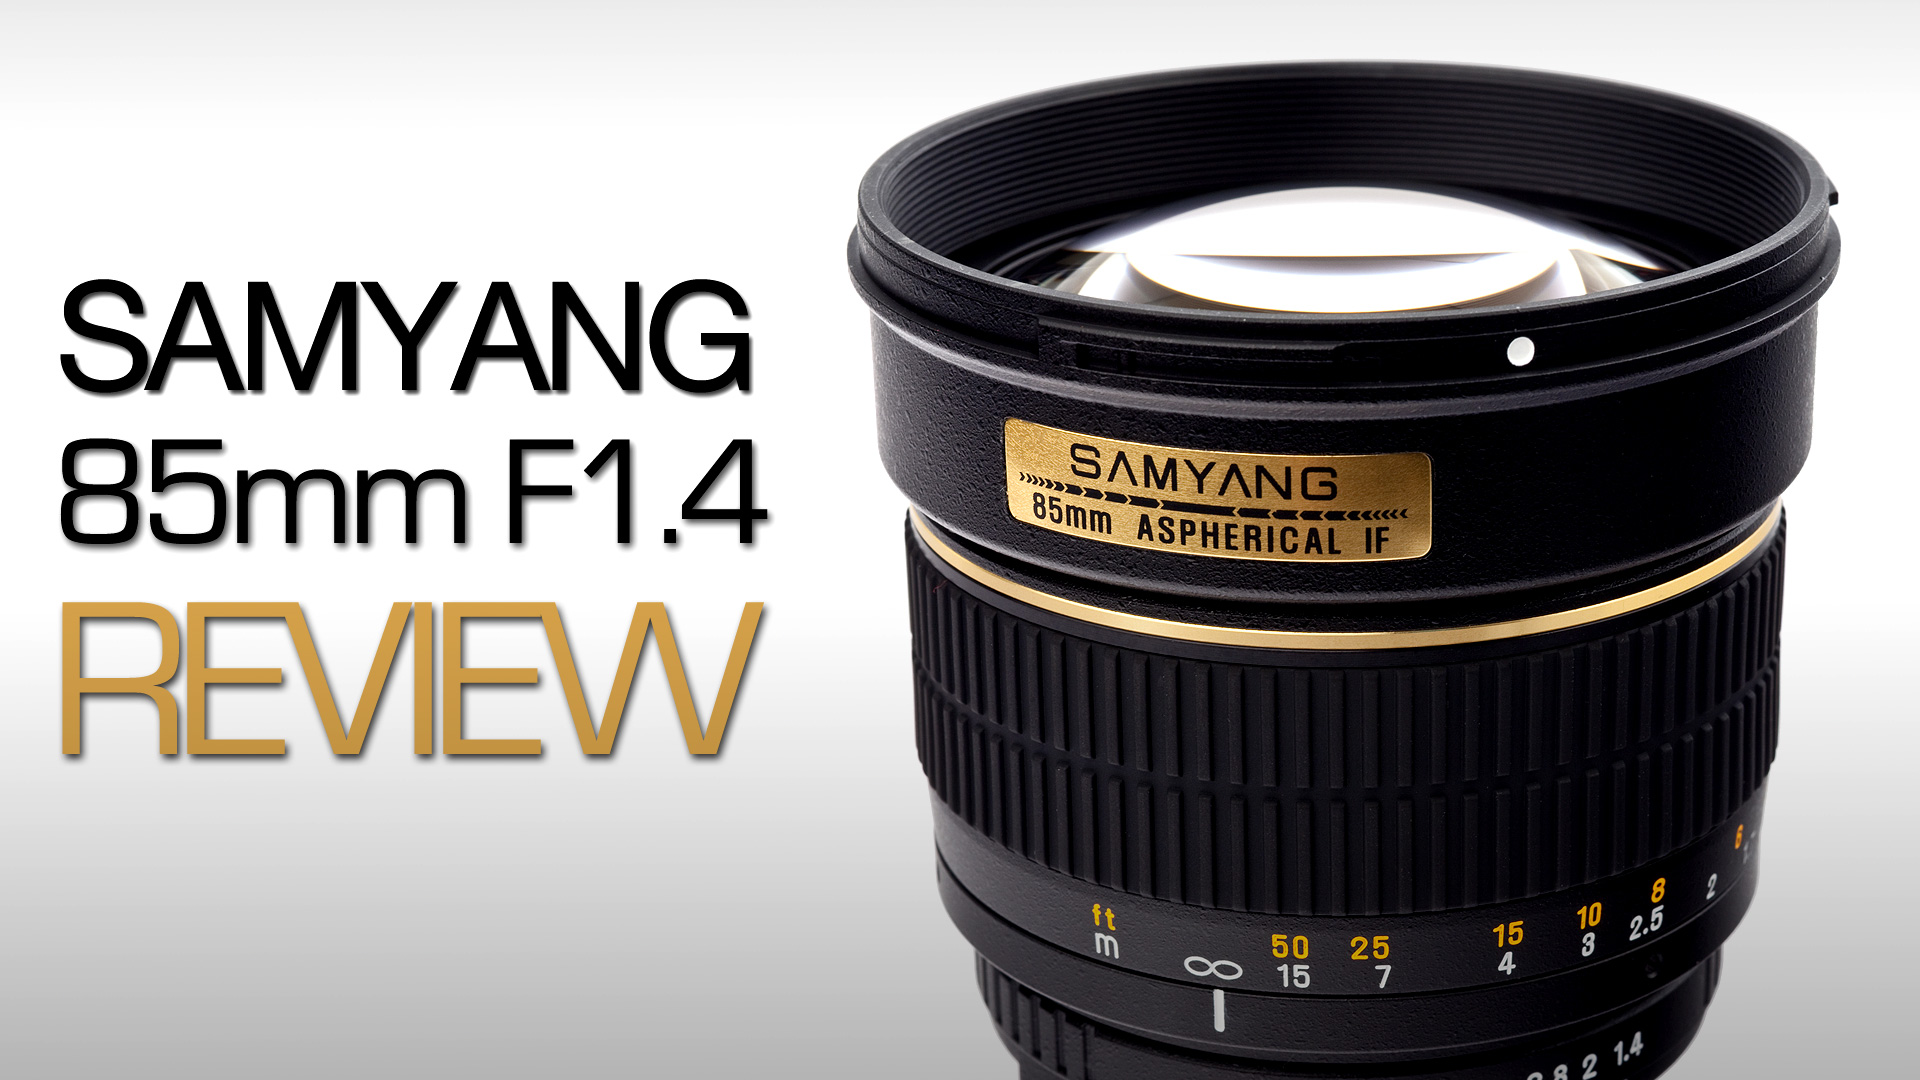 Samyang 85mm F1.4 REVIEW